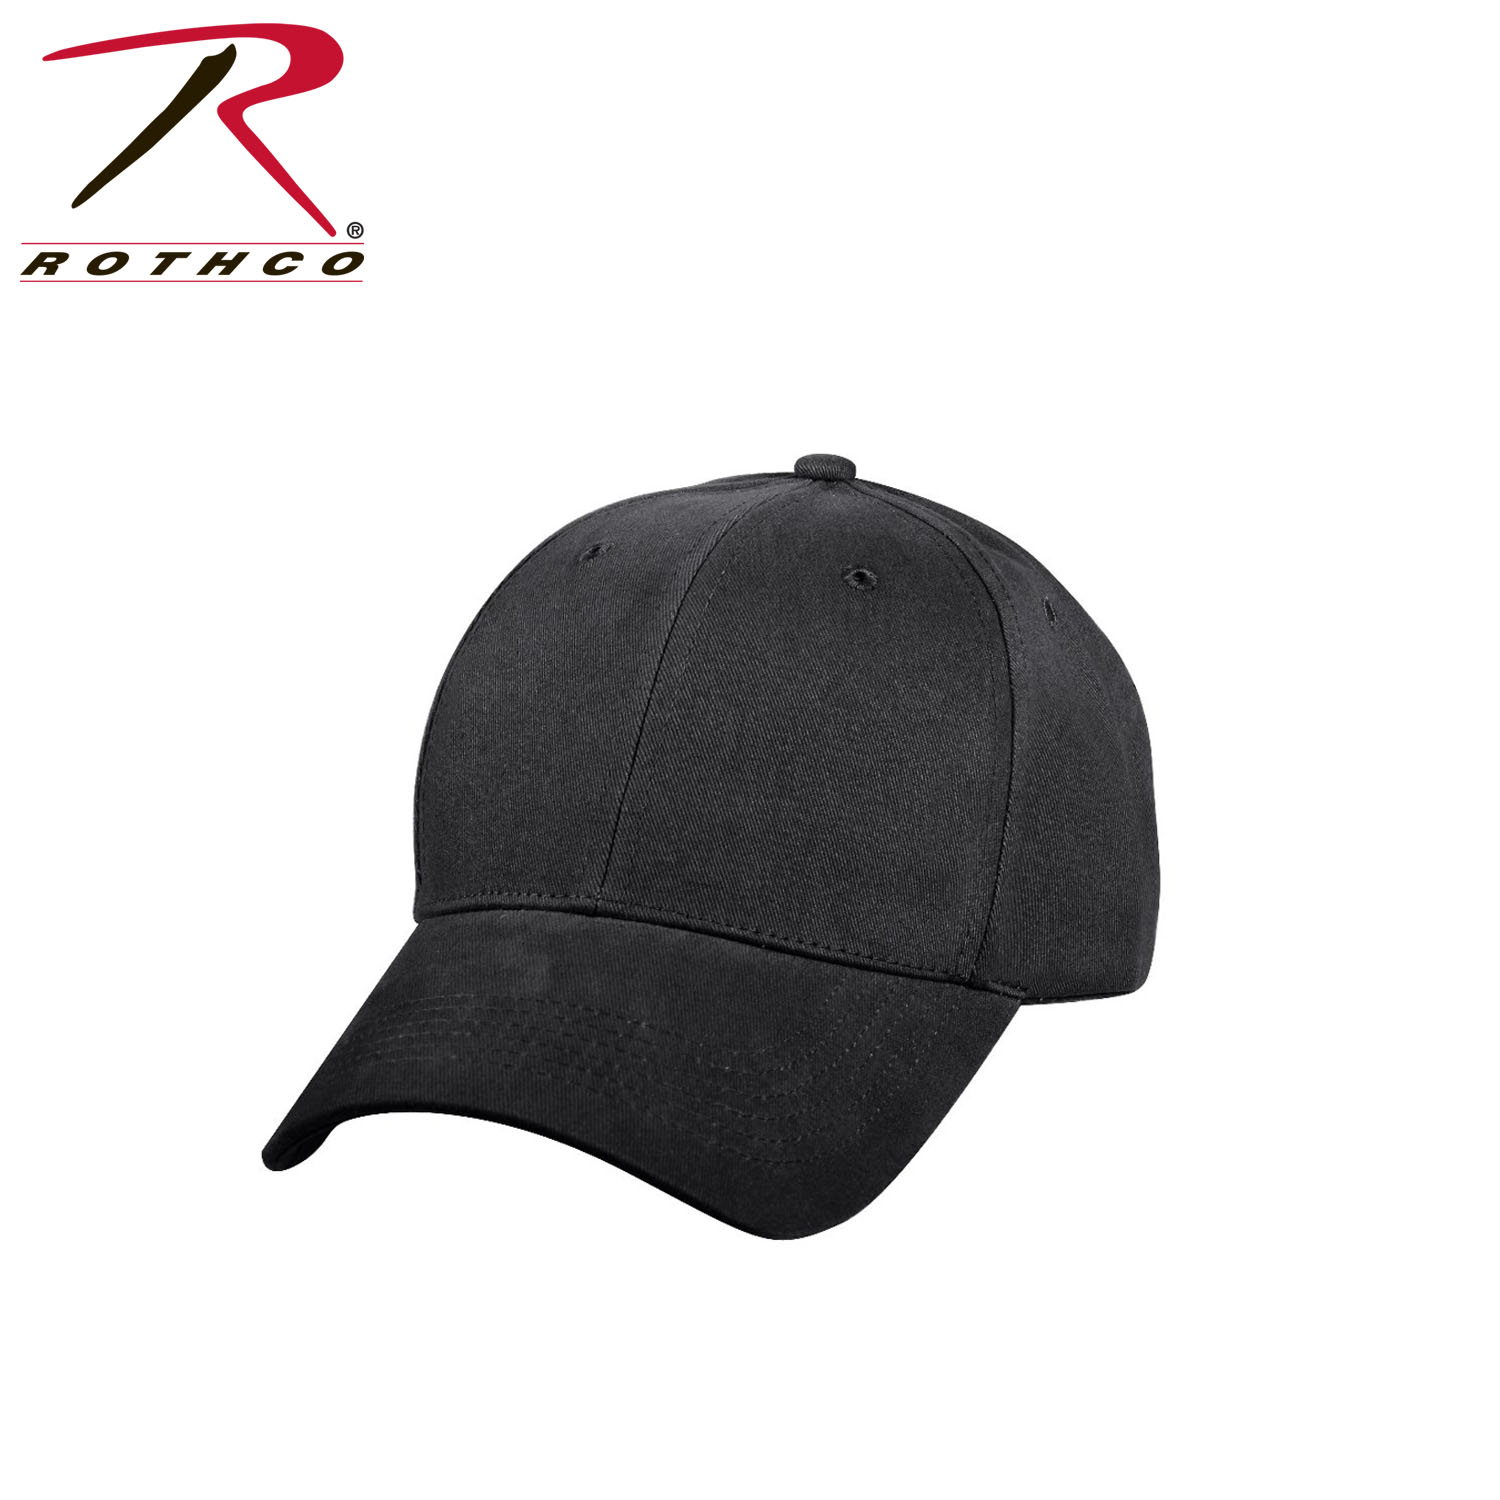 5639b103bd2 Rothco Supreme Solid Color Low Profile Cap